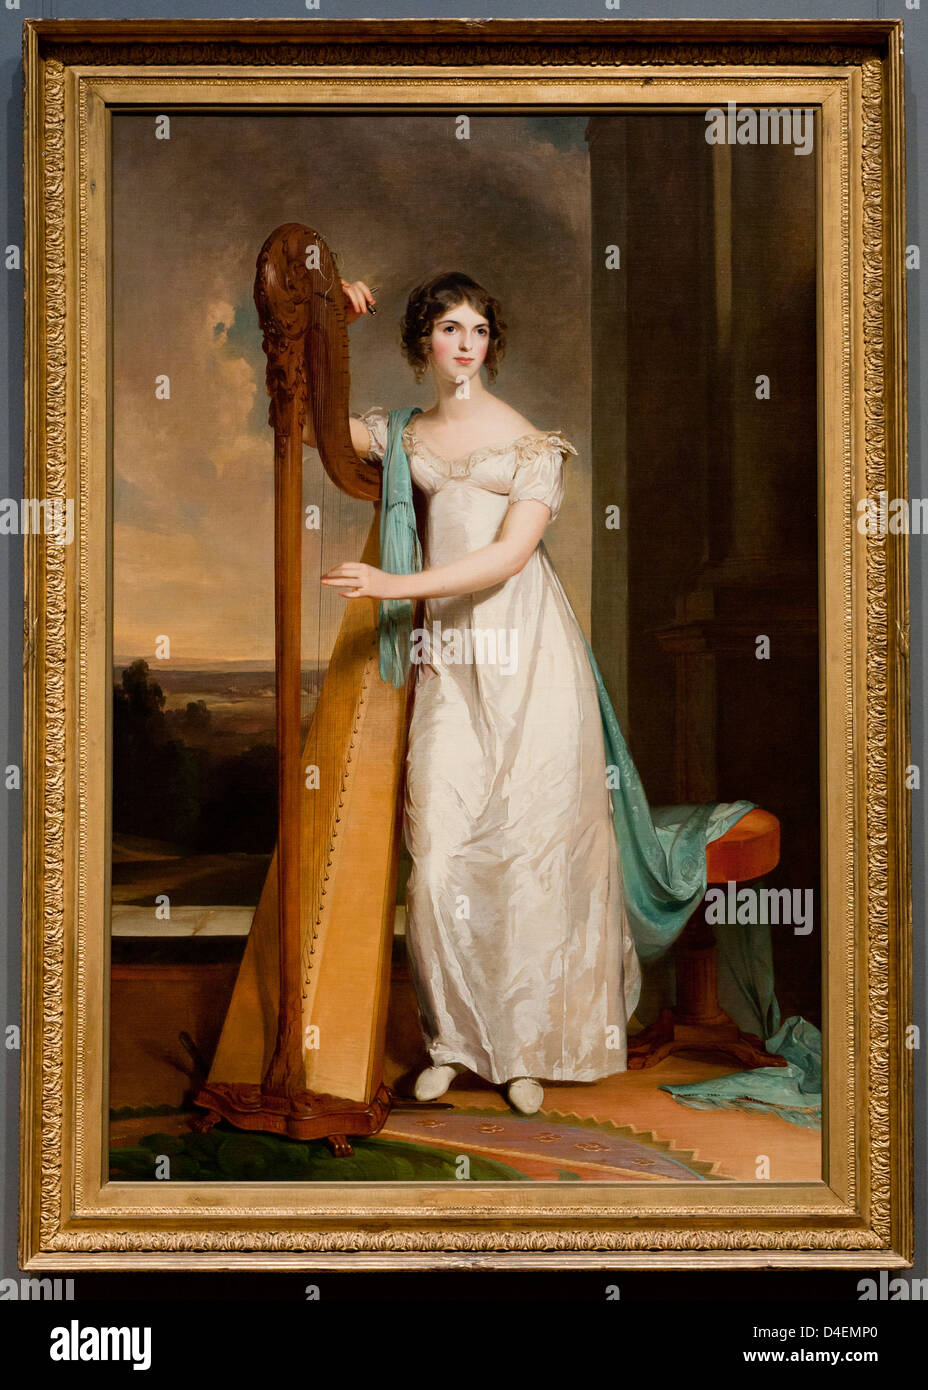 'Lady with a Harp: Eliza Ridgely' by Thomas Sully, 1818 - Stock Image